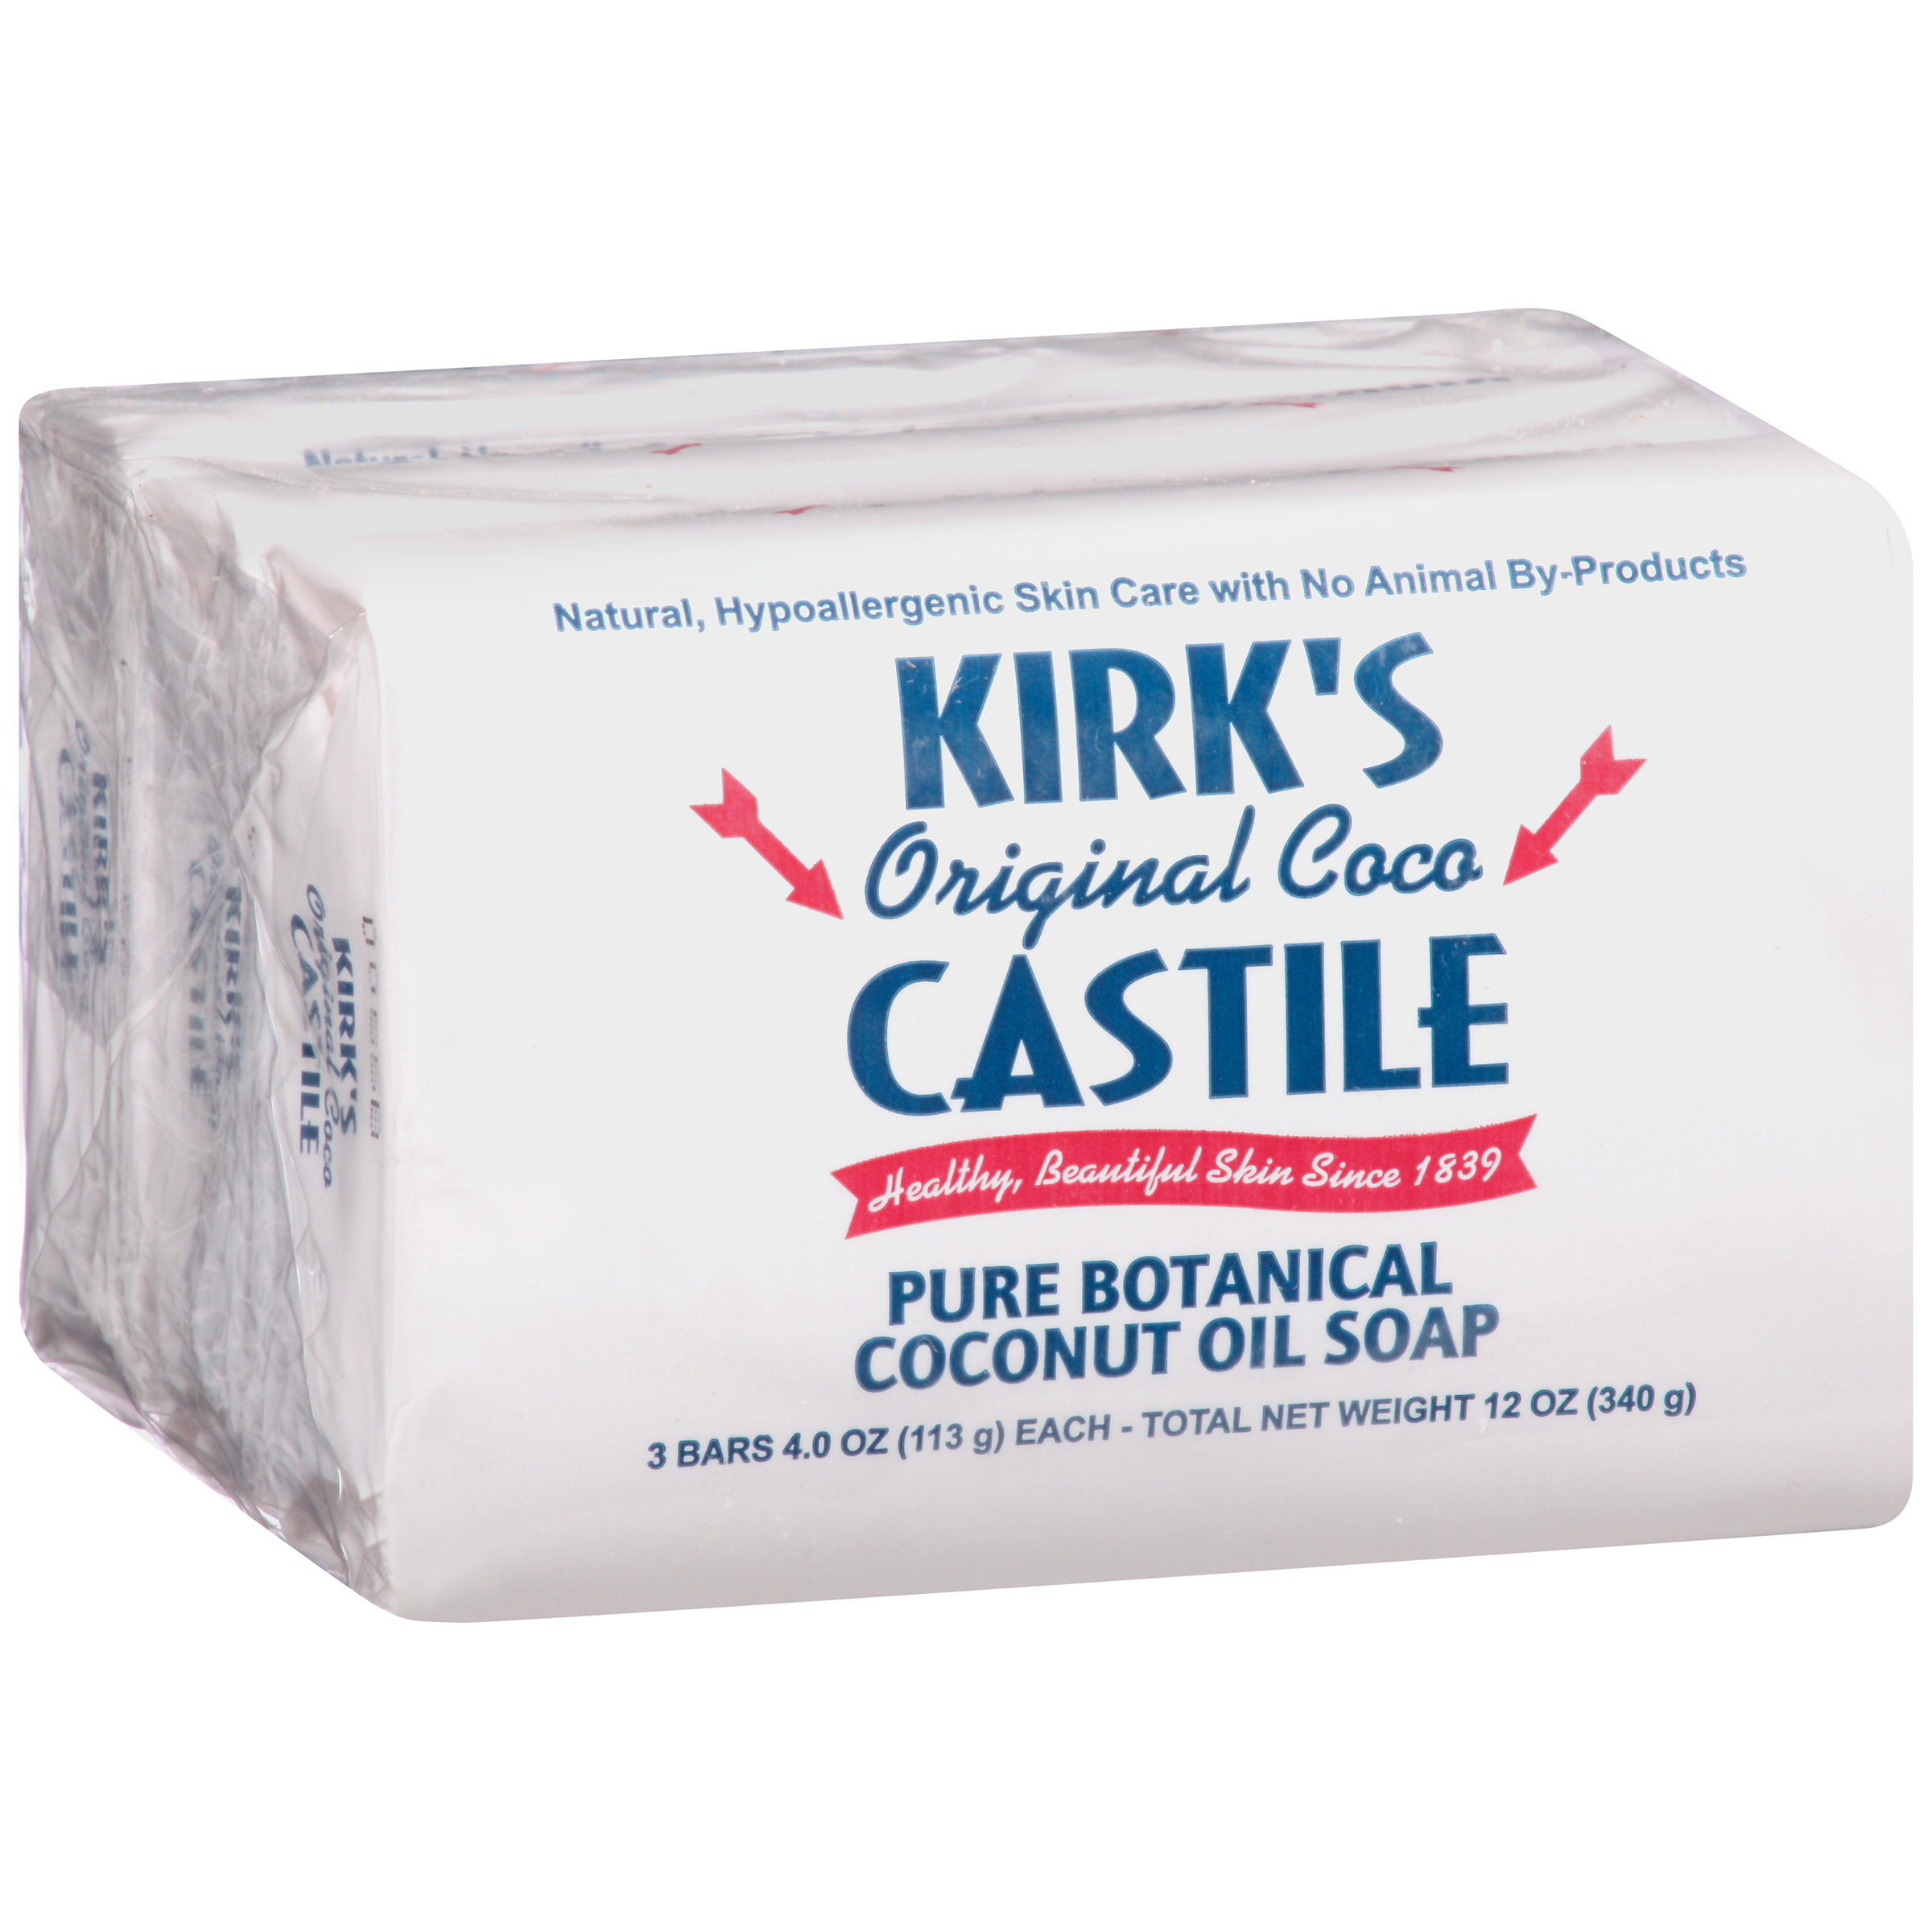 Kirk's Original Coco Castile Natural Bar Soap, 4 oz, 3 count